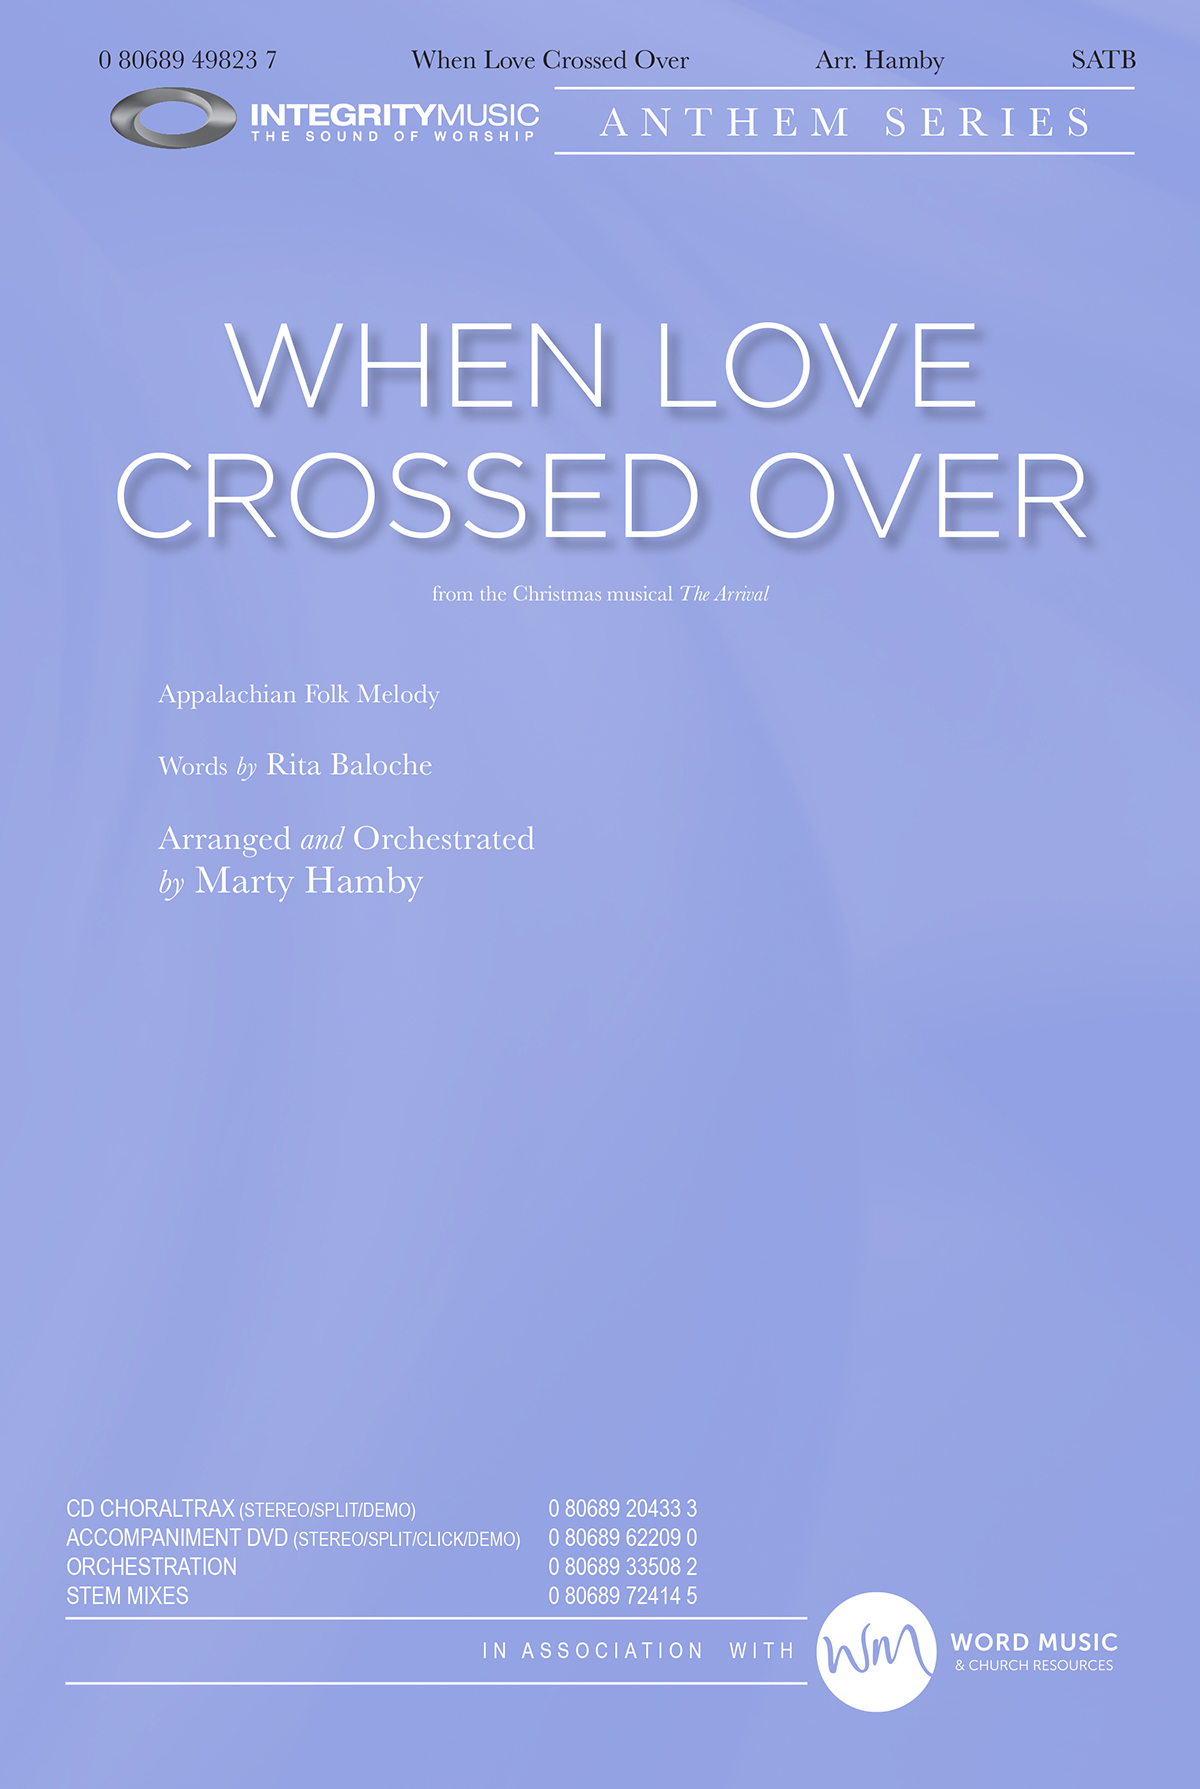 When Love Crossed Over